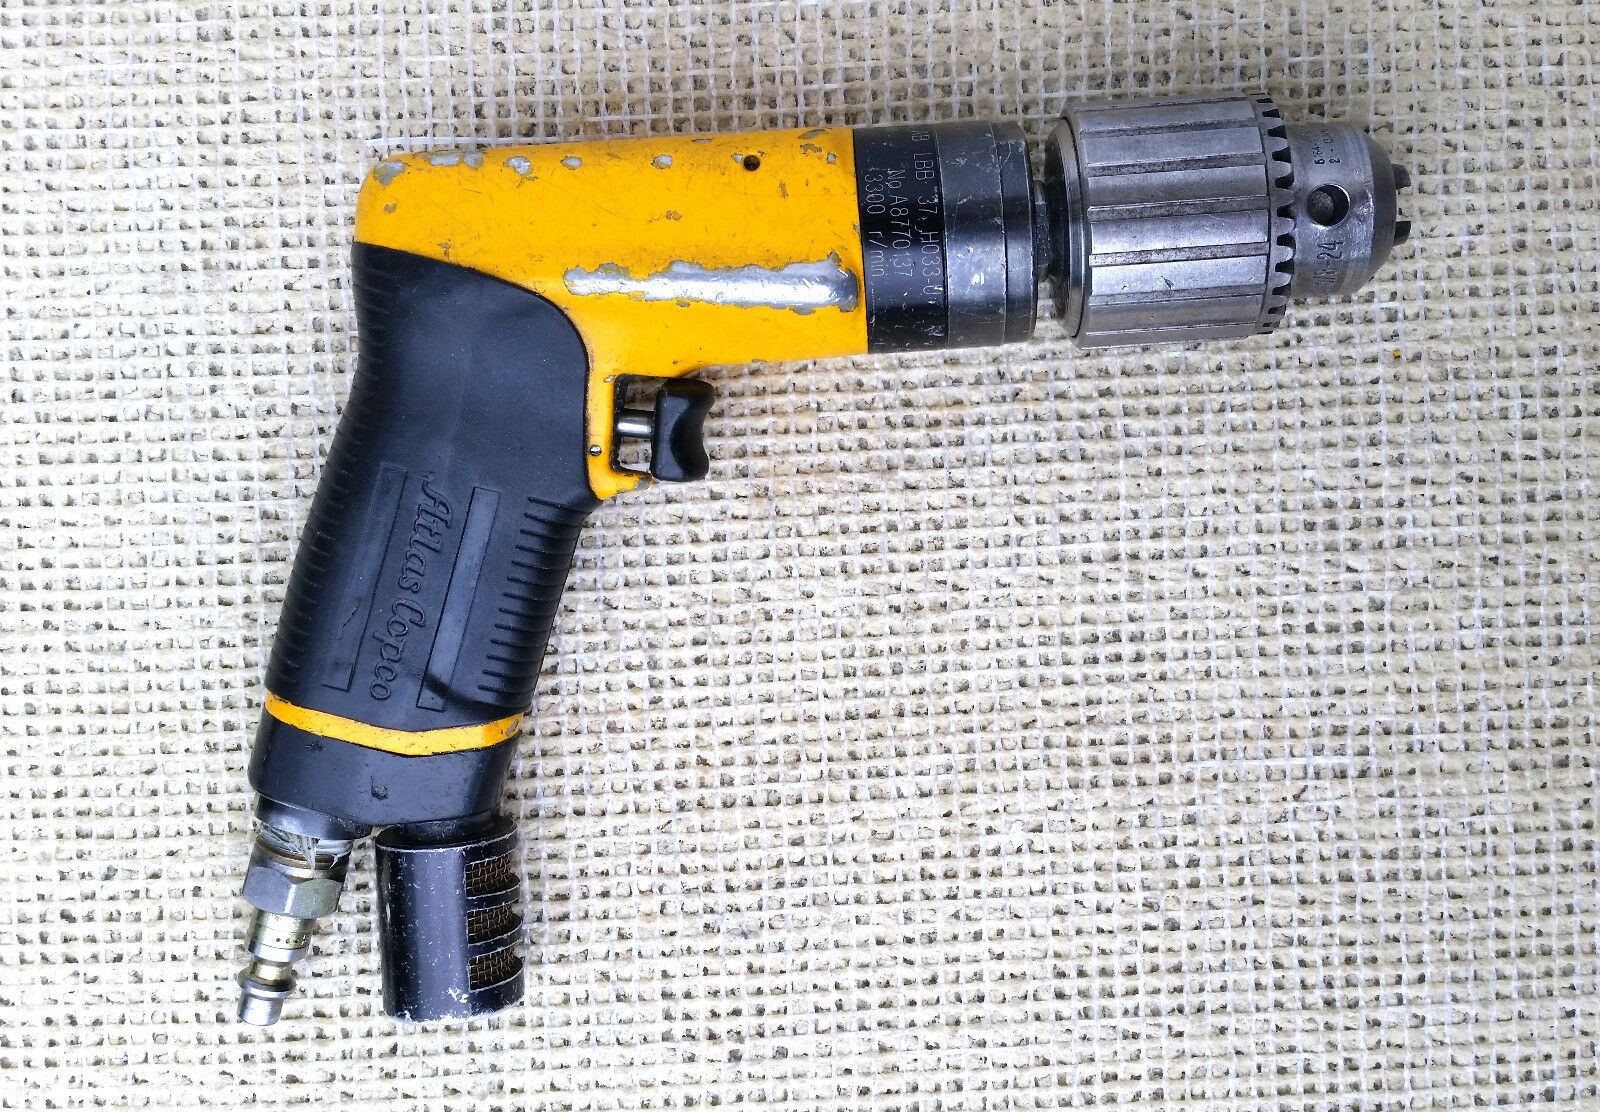 Atlas Copco Lbb37 Air Drill Motor With 1 2 Jacobs Chuck